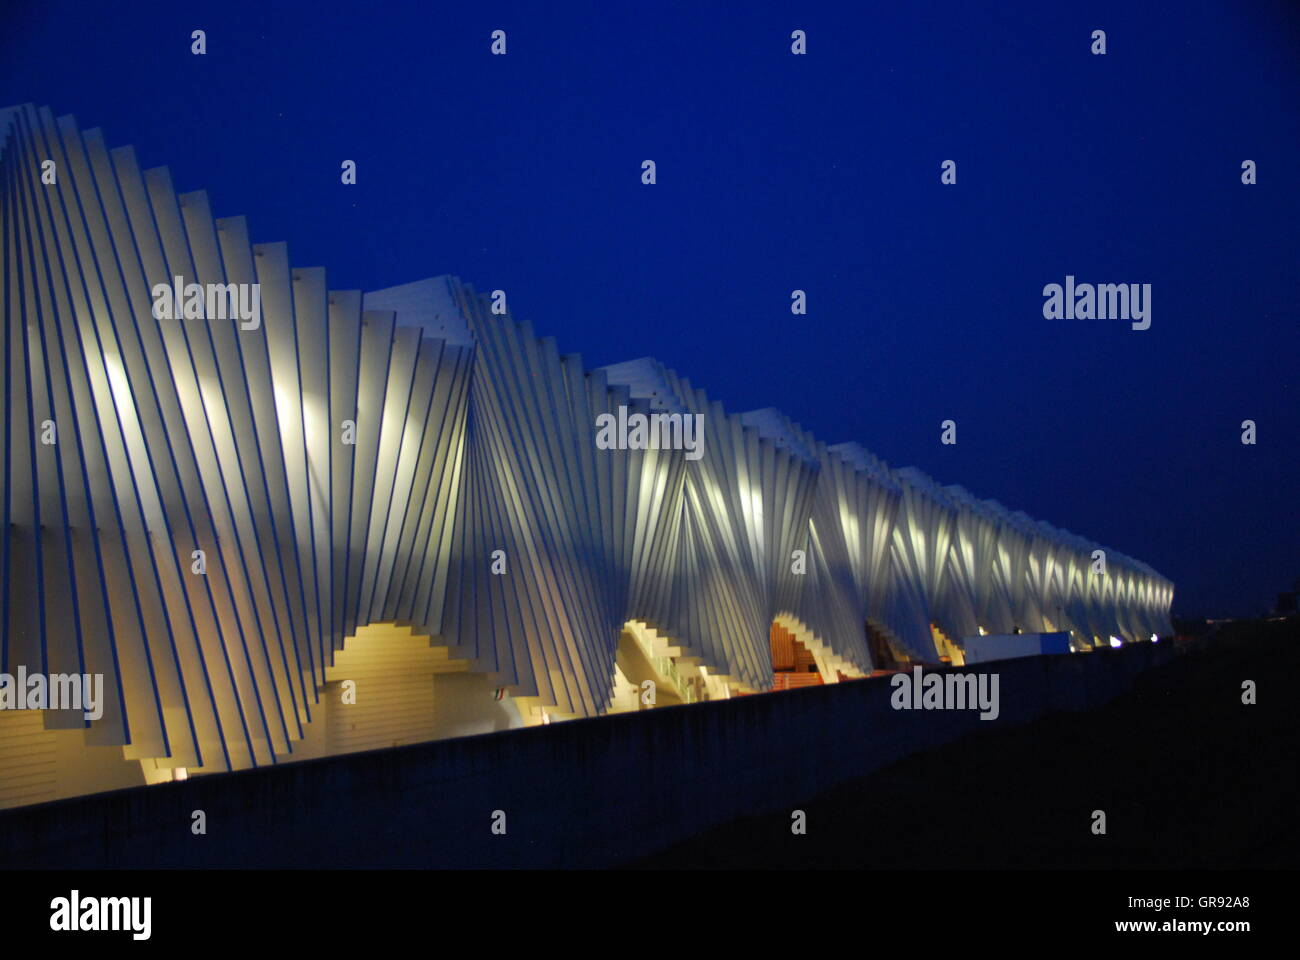 Illuminated Architectural Feature Against Sky At Night - Stock Image